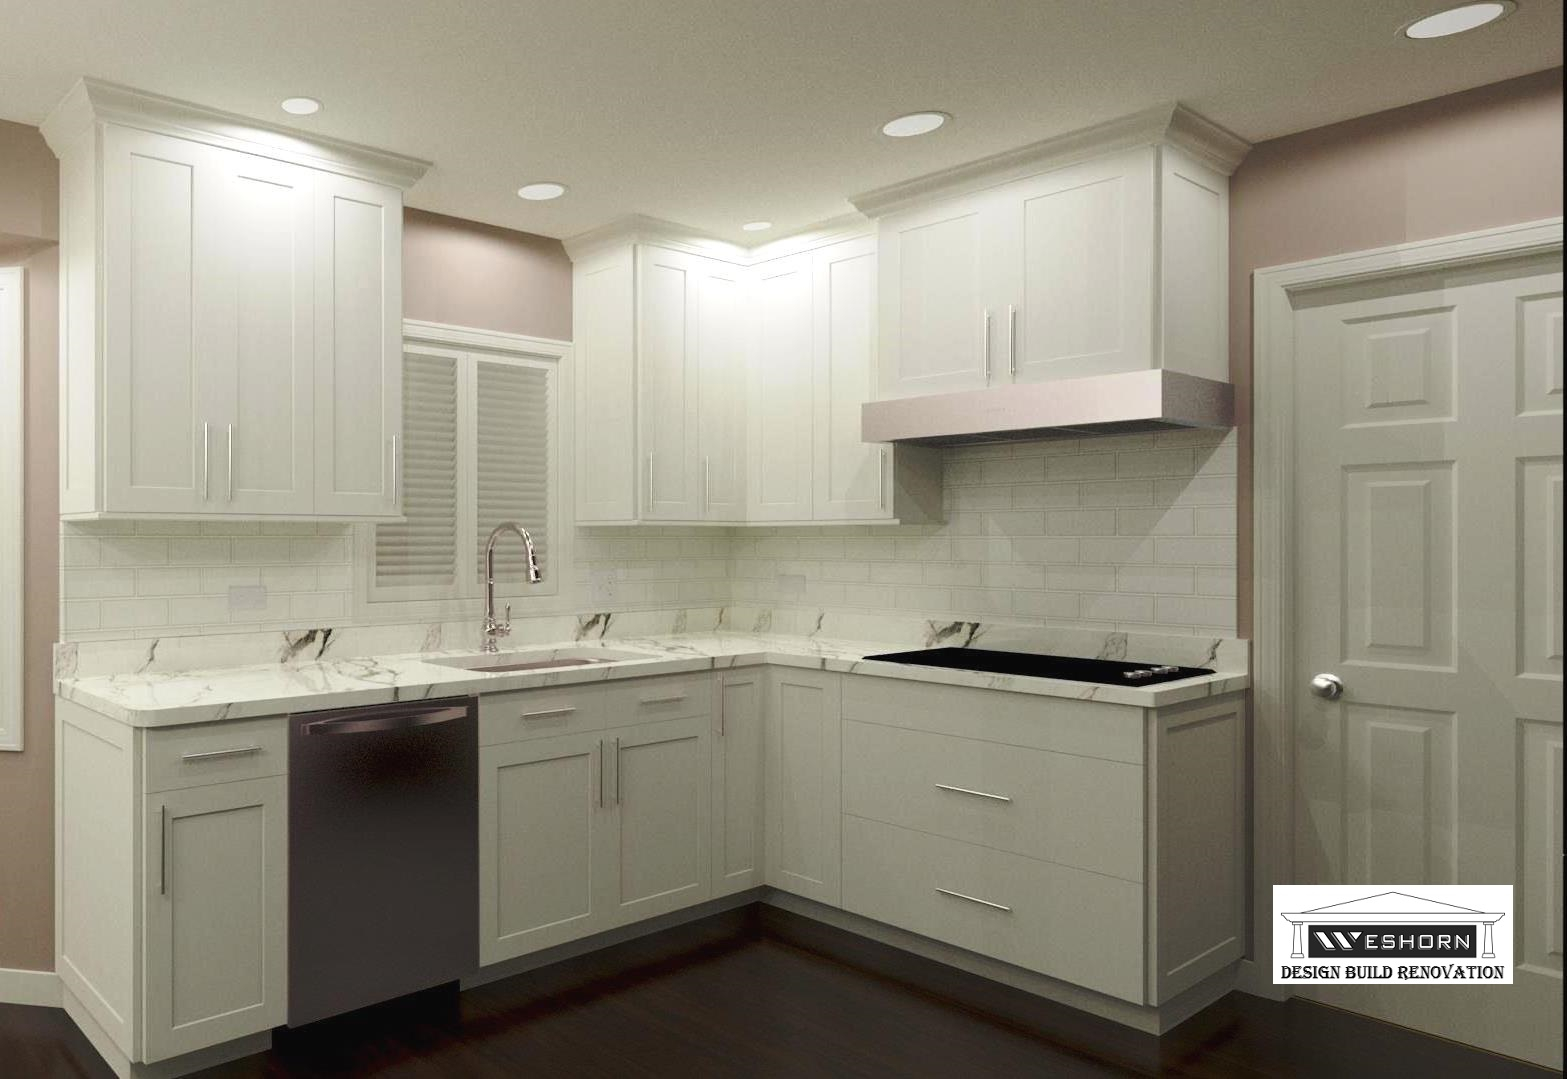 Kitchen Bathroom Remodeling Design Northbrook Cabinets To Fit Budget - Bathroom remodeling northbrook